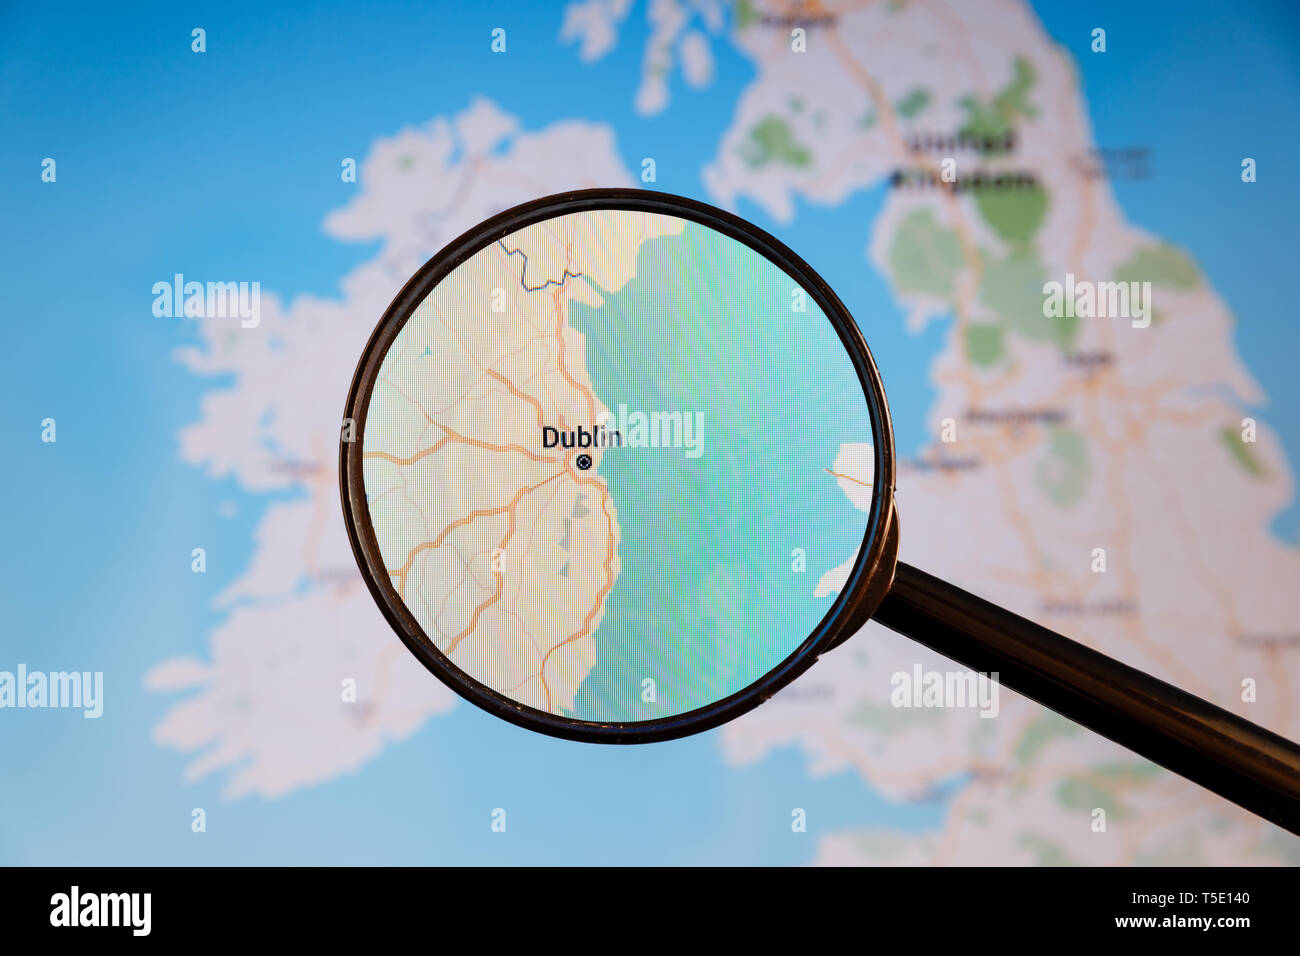 Dublin, Ireland. Political map. City visualization illustrative concept on display screen through magnifying glass. - Stock Image